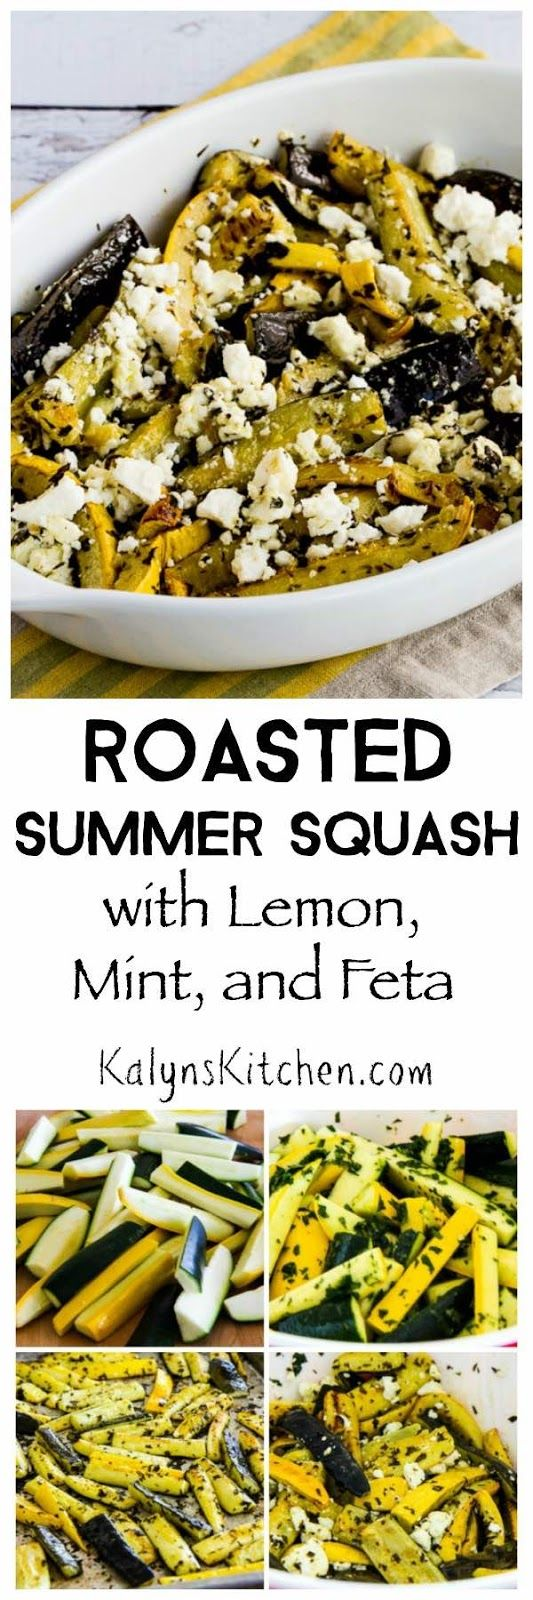 Roasted summer squash, Summer squash and Squashes on Pinterest